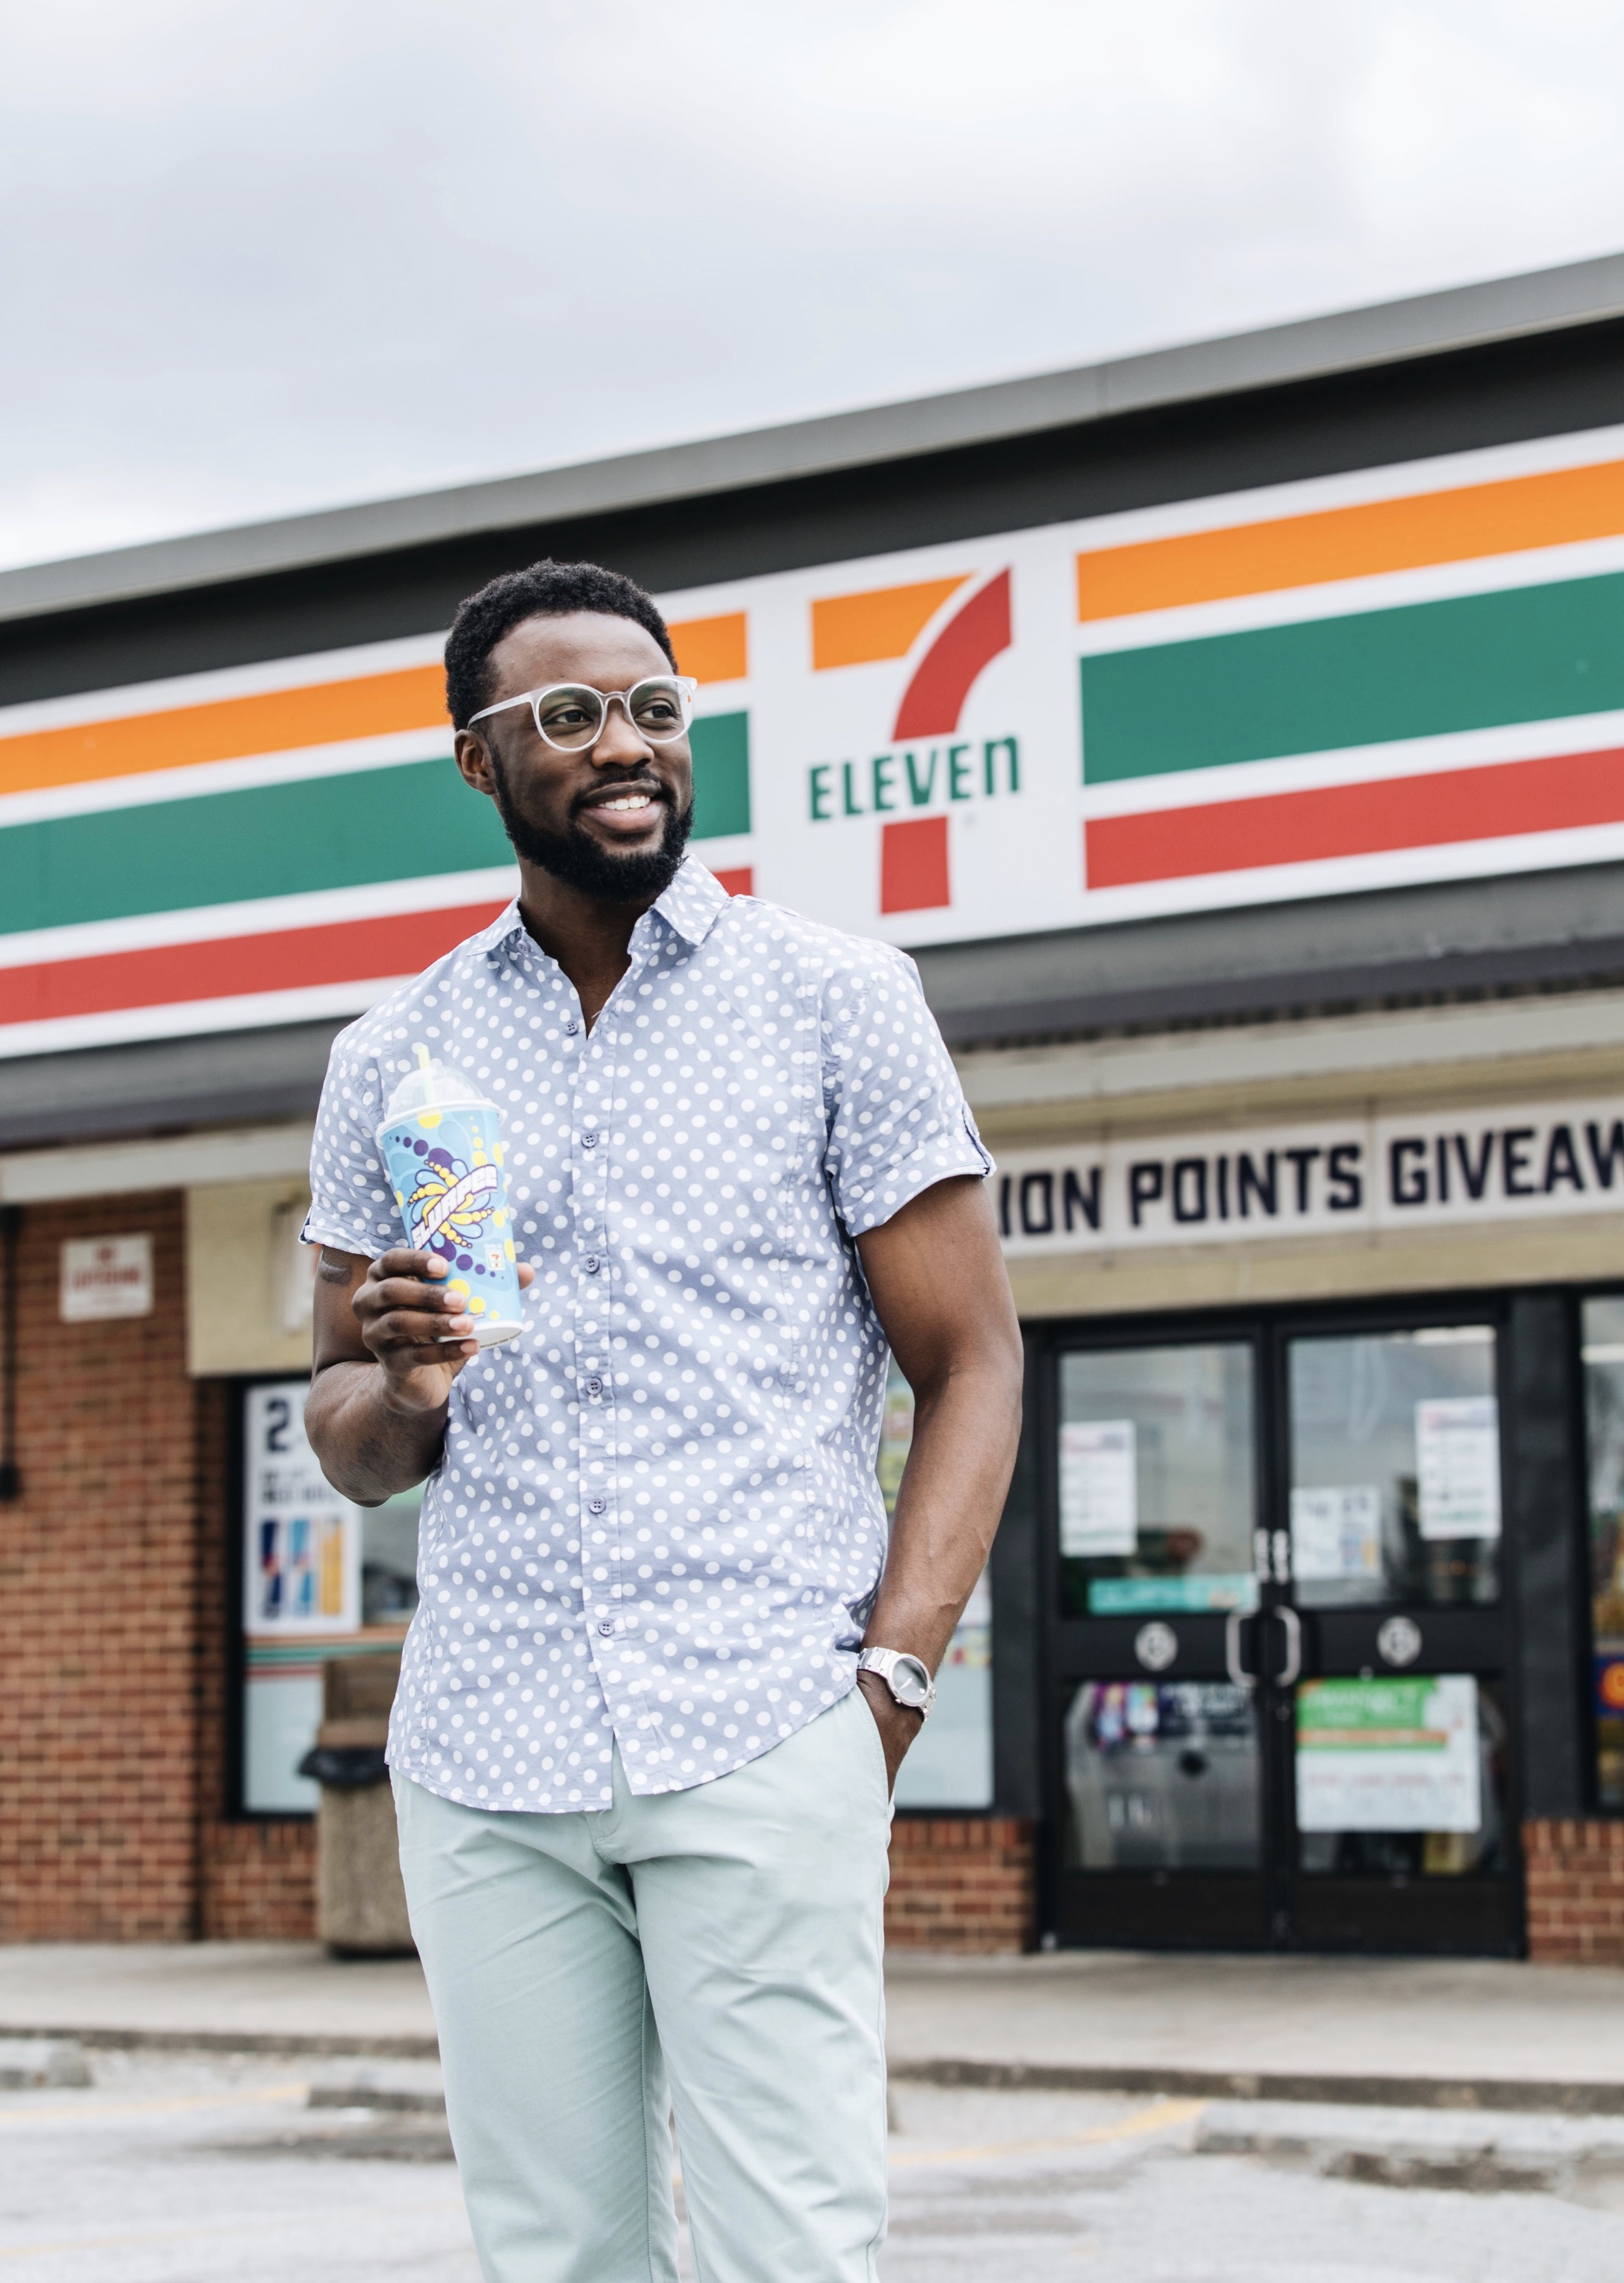 The Creative Gentleman holding a slurpee in front of 7-Eleven. This image was created by The Creative Gentleman for 7-Eleven as part of their 7-Eleven Million Points Giveaway campaign. The campaign encourages people download the 7Rewards App. Overtime the 7Rewrds app is scanned before April 28th, you could win a million points.